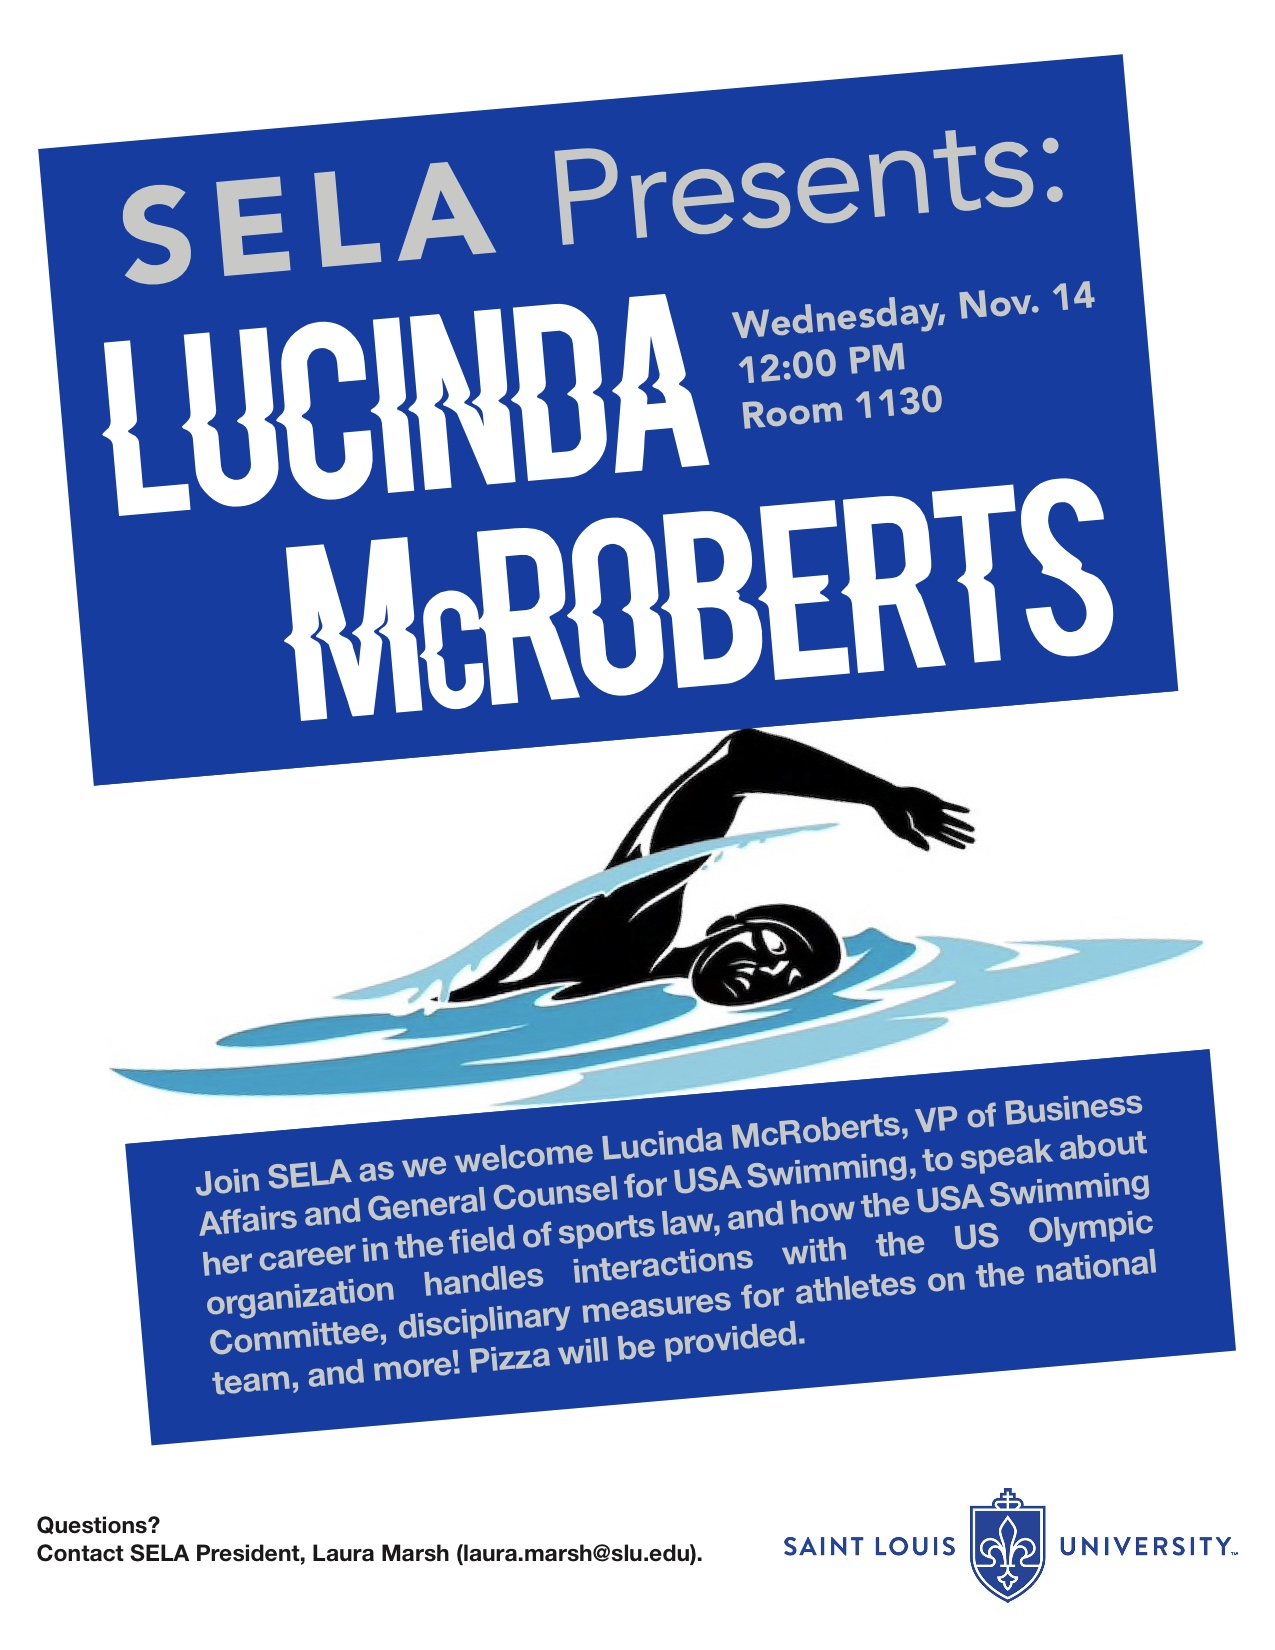 St. Louis University School of Law - Poster for Lucinda McRoberts event, November 2018